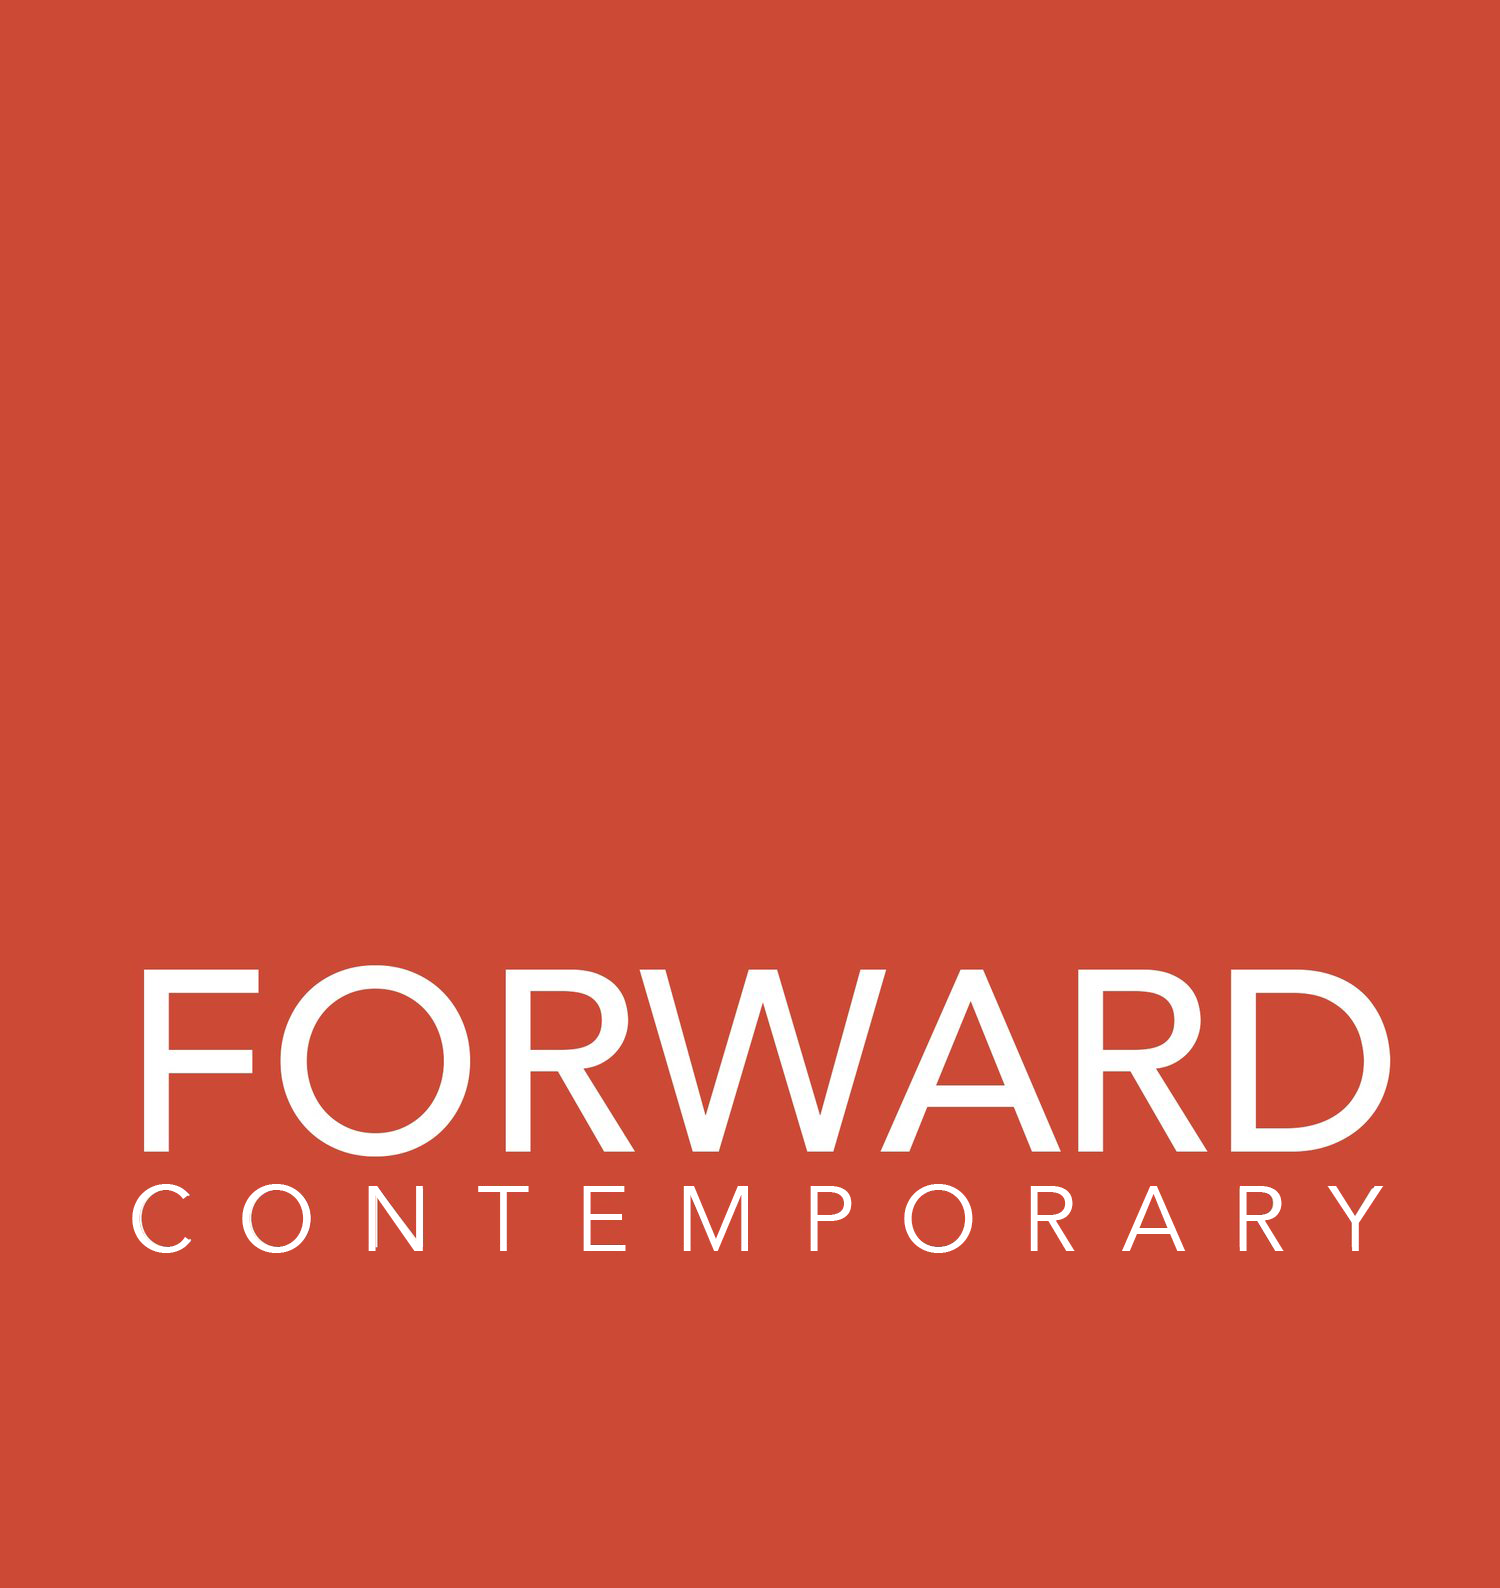 FORWARD CONTEMPORARY